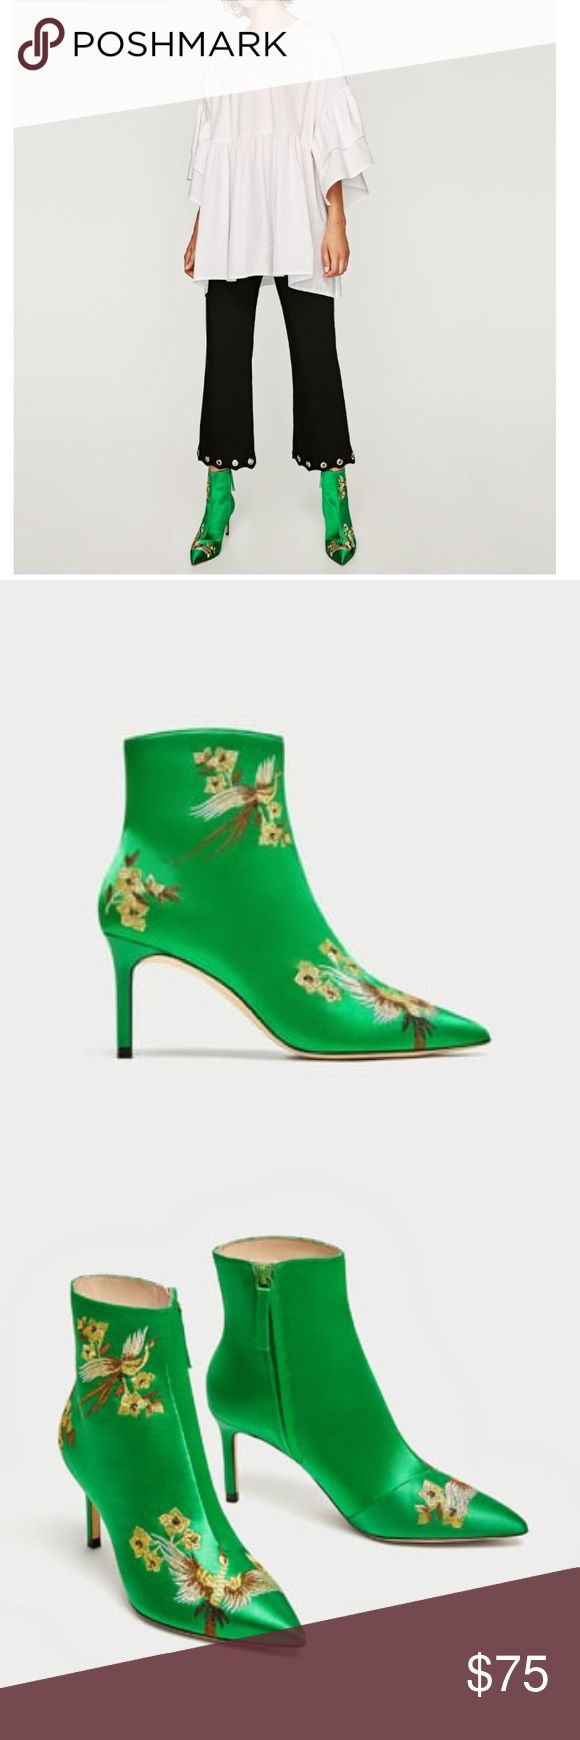 "Zara satin high heel ankle boots Green satin ankle boots with embroidered detailing in a combination of colors. They feature pointed toes, lined stiletto heels and side zip fastening. Heel height 3"" Size EUR 37, USA 6.5 New with tags Zara Shoes Ankle Boots & Booties #stilettoheelsboots"